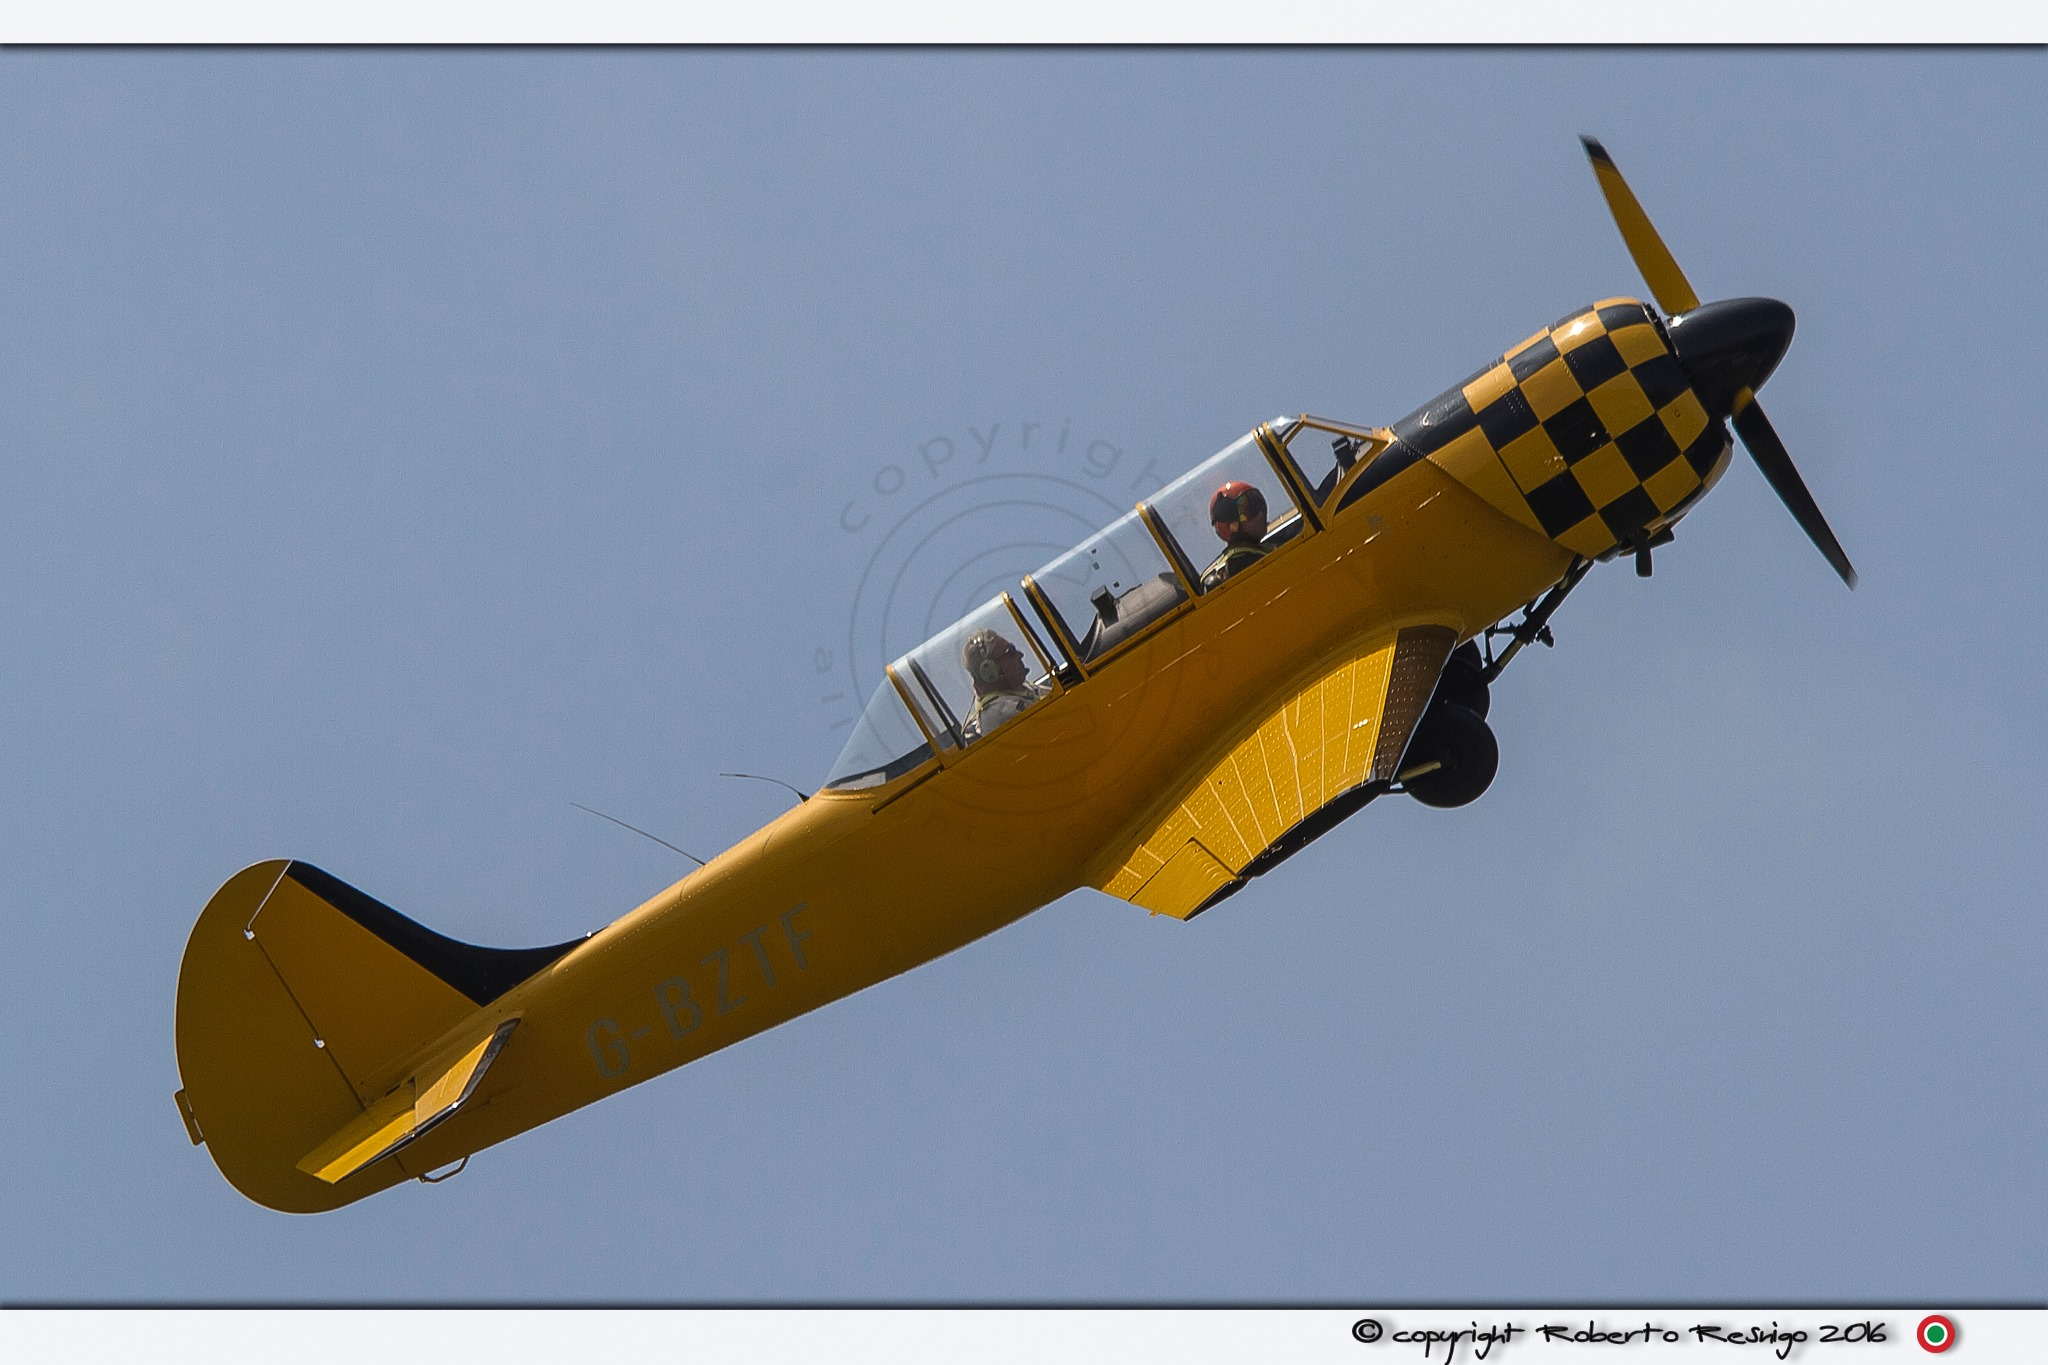 Yellow YAK 52